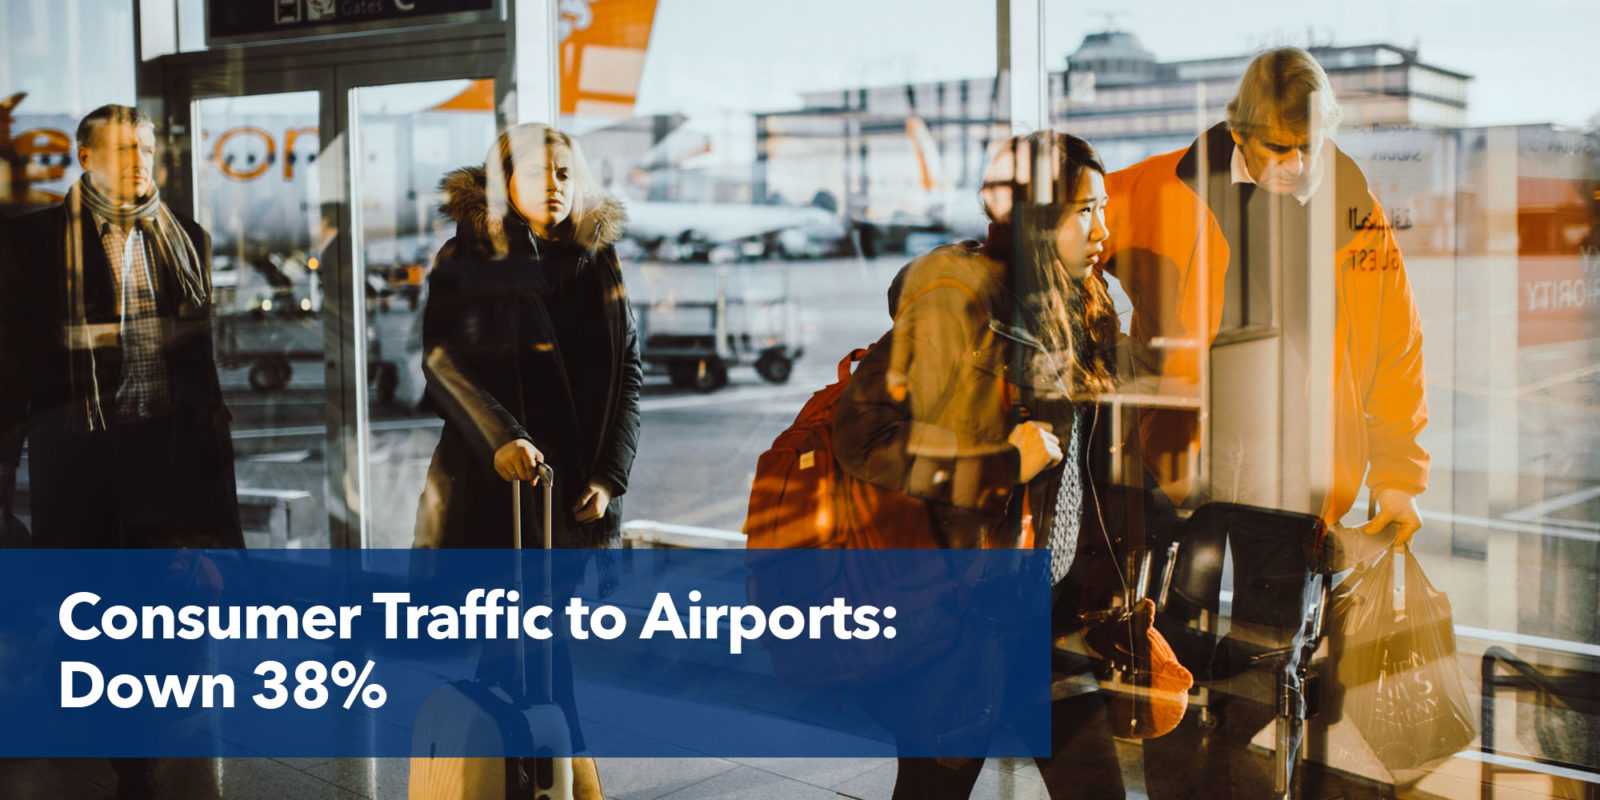 Consumer traffic to airports: down 38%.